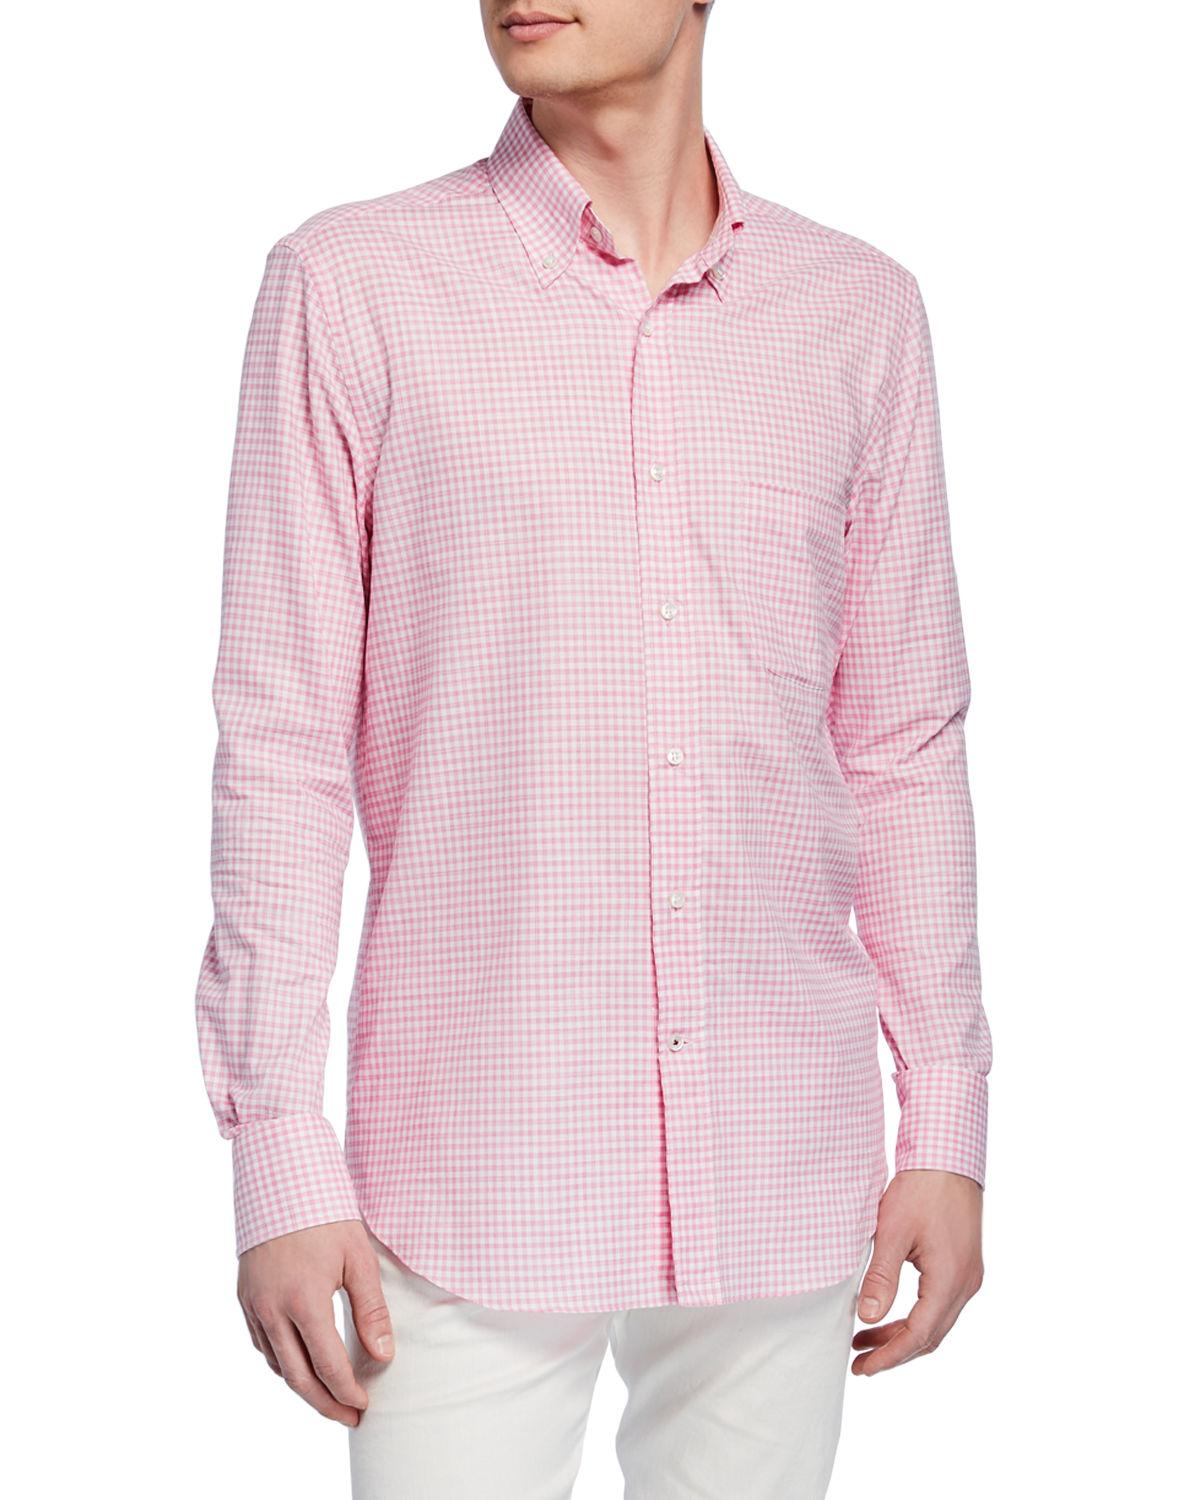 Loro Piana T-shirts MEN'S CHECK SPORT SHIRT